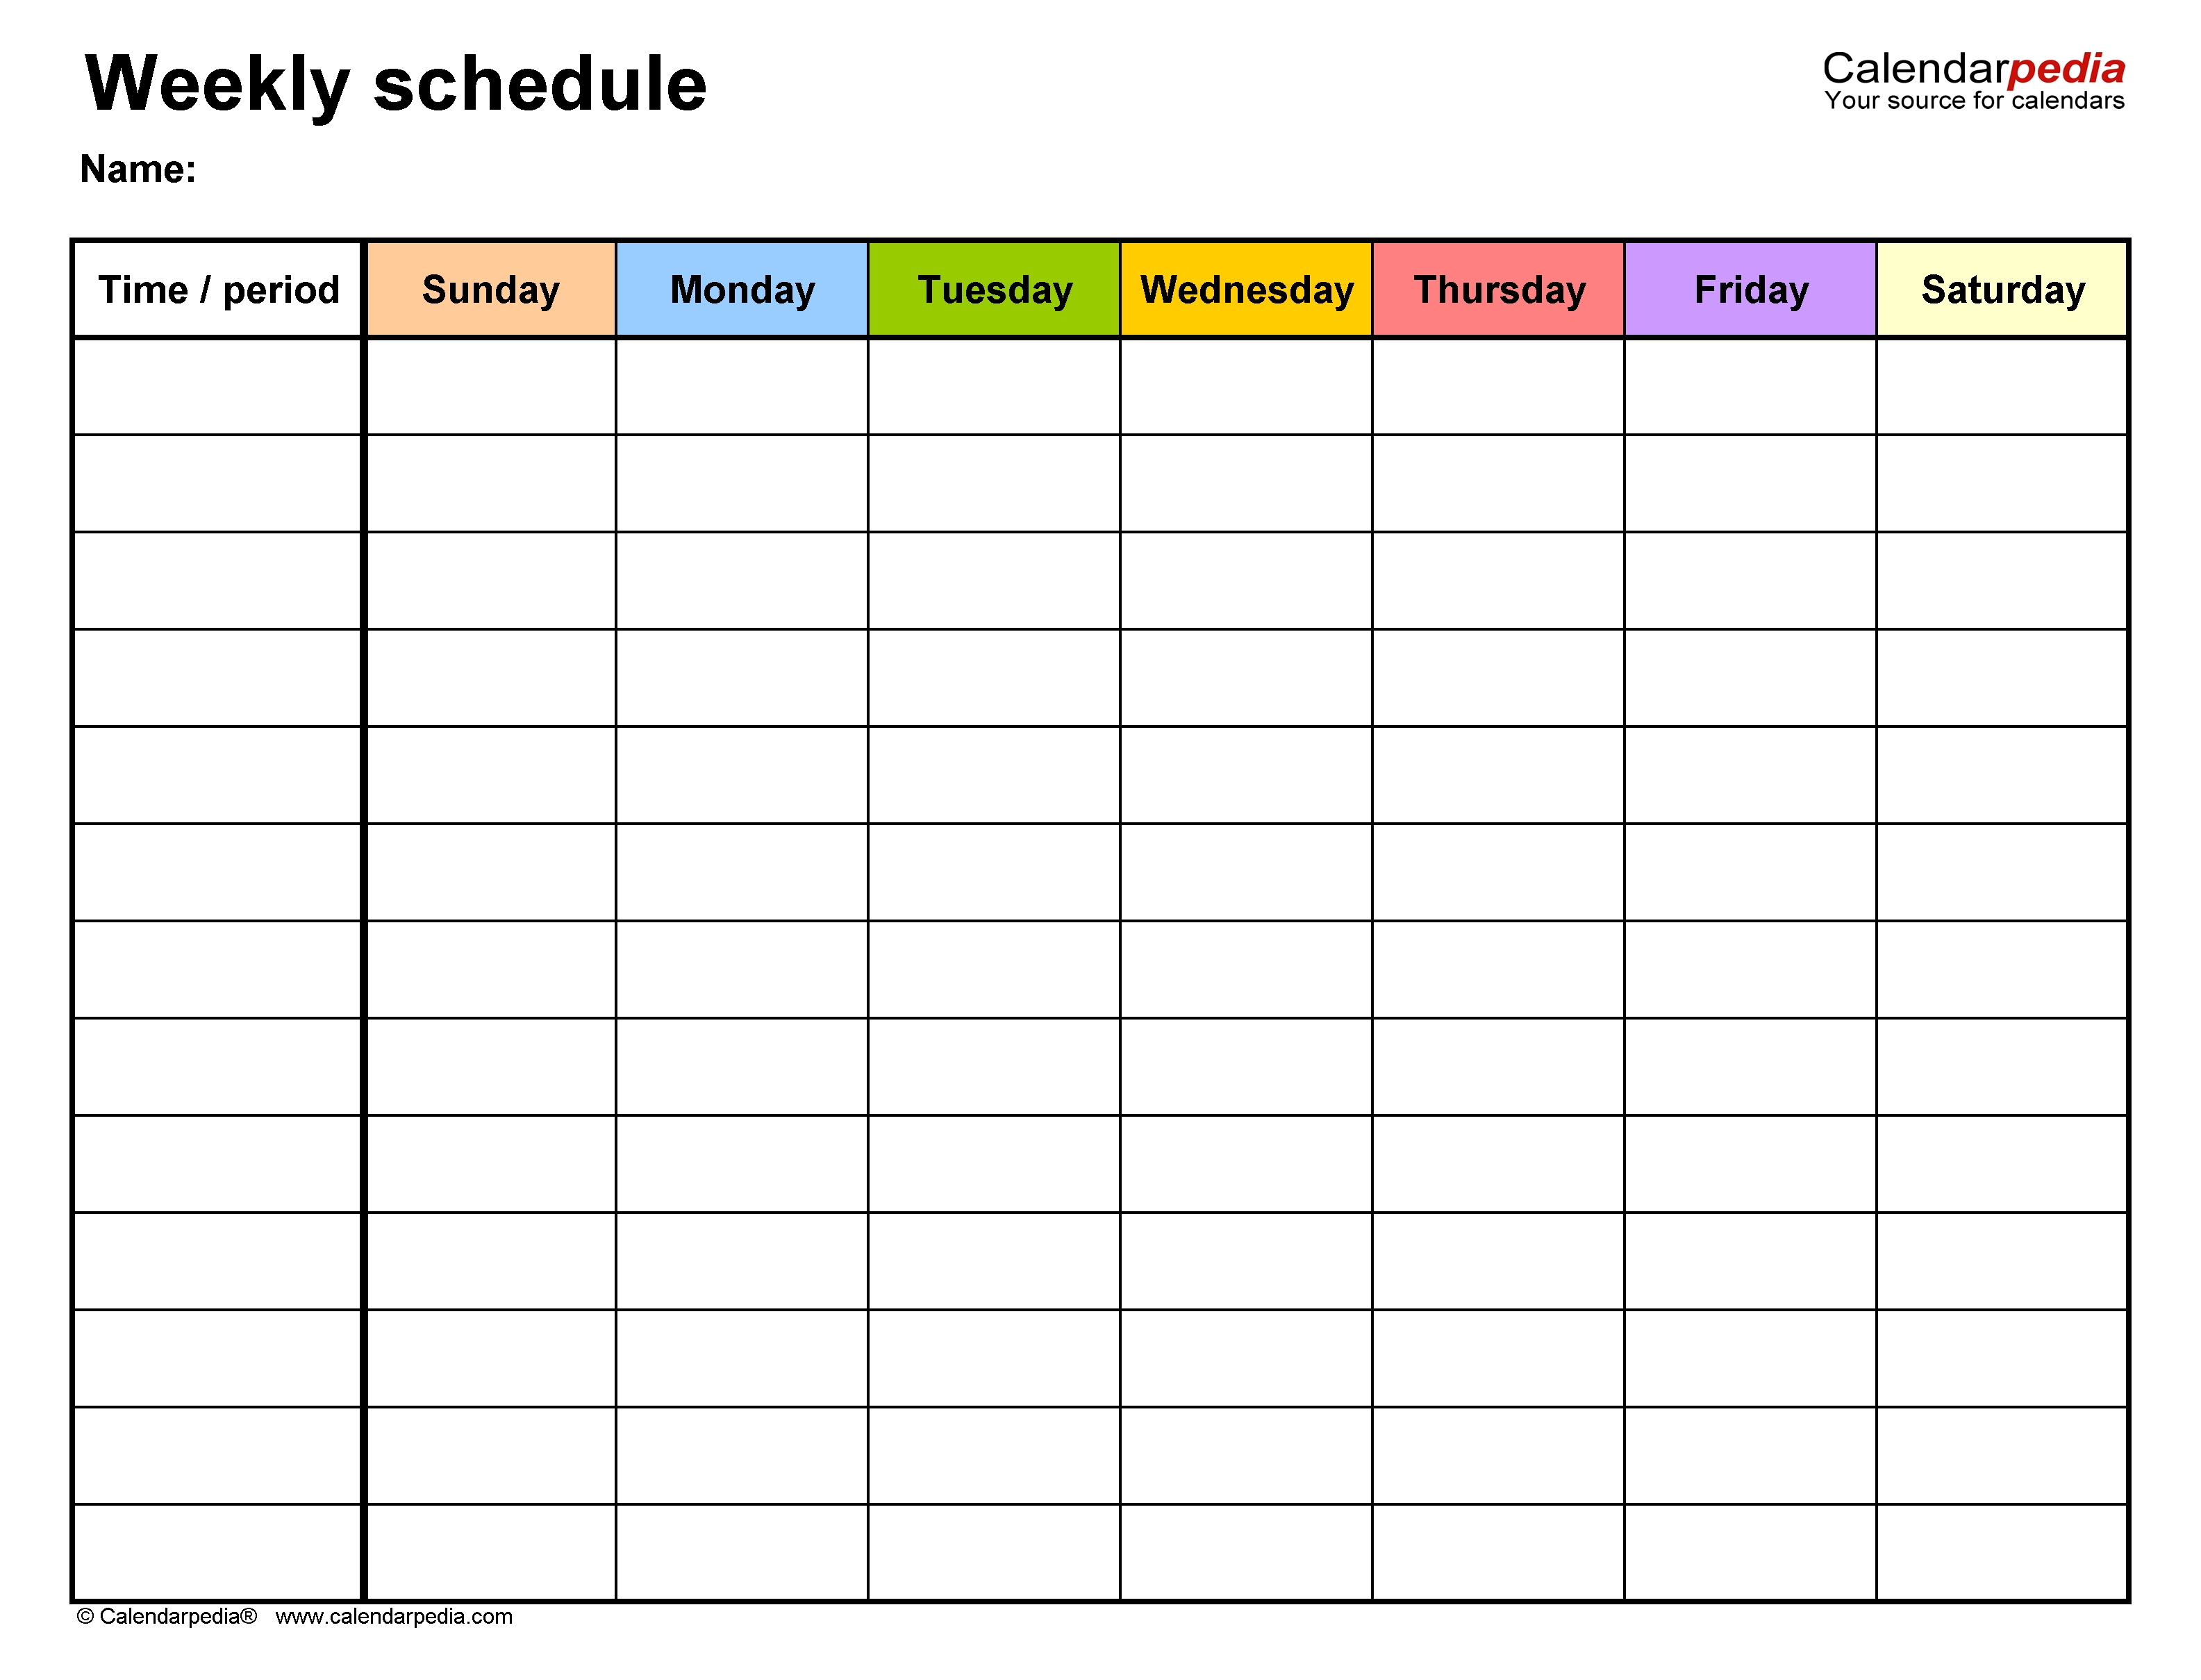 Free Weekly Schedule Templates For Word - 18 Templates Calendar Template In Word For Mac